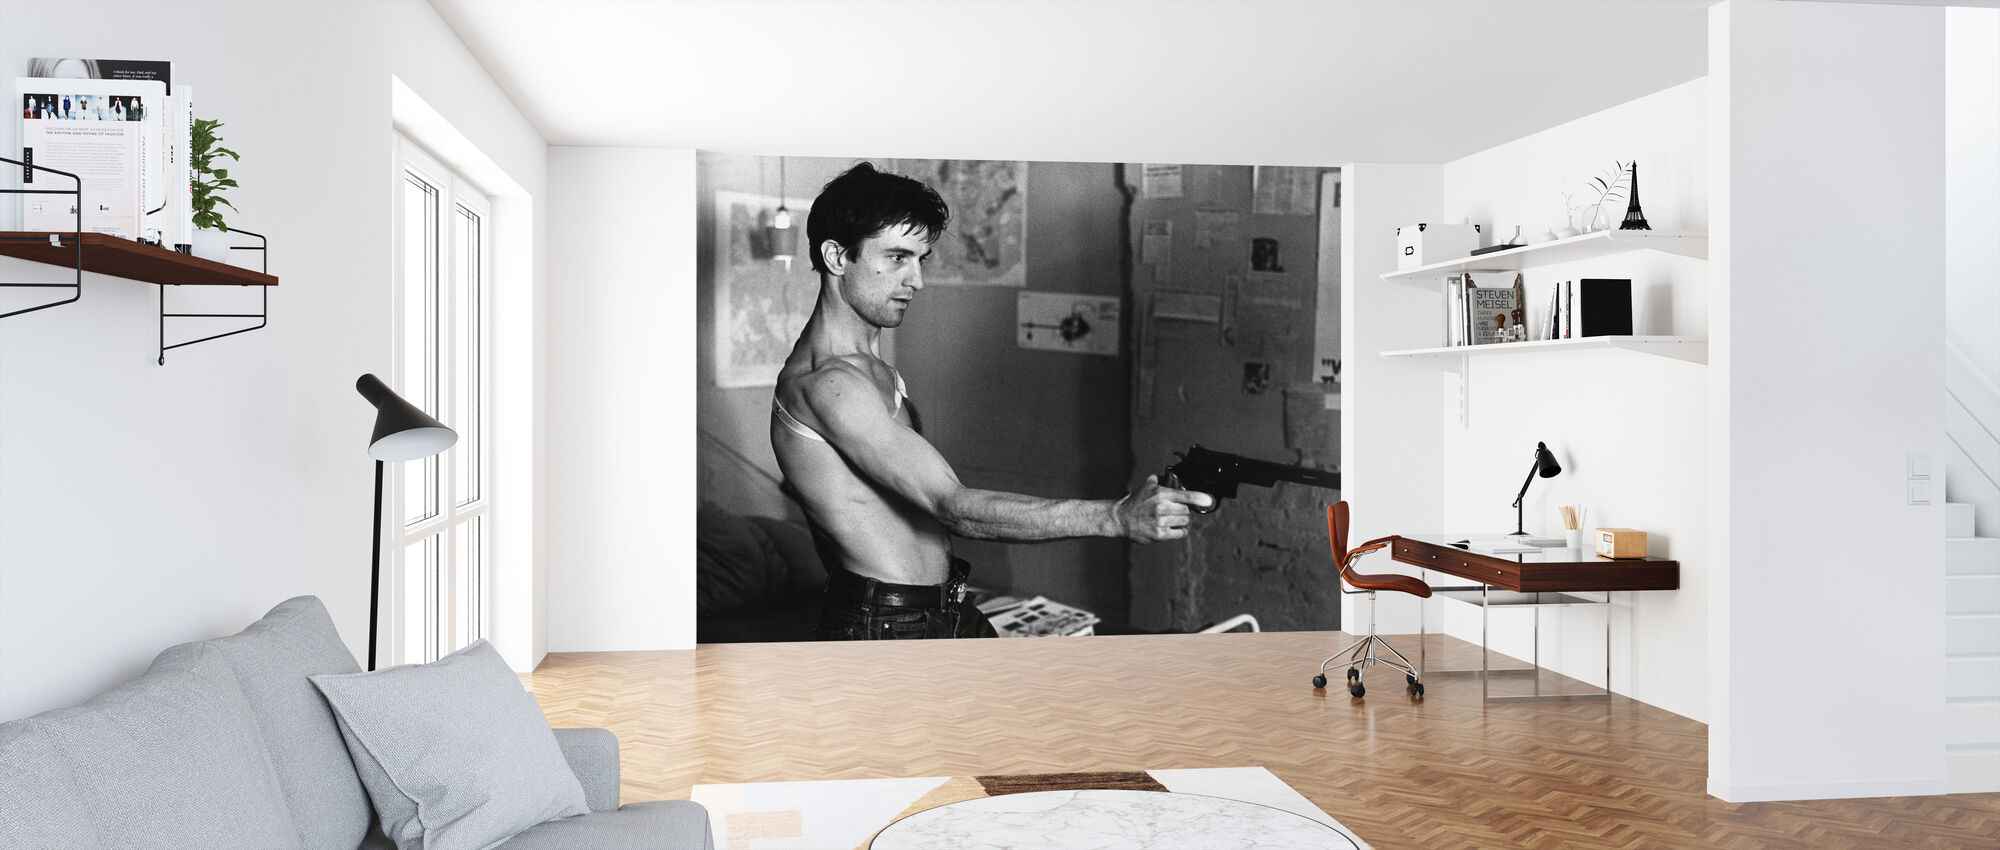 Robert De Niro in Taxi Driver - Wallpaper - Office